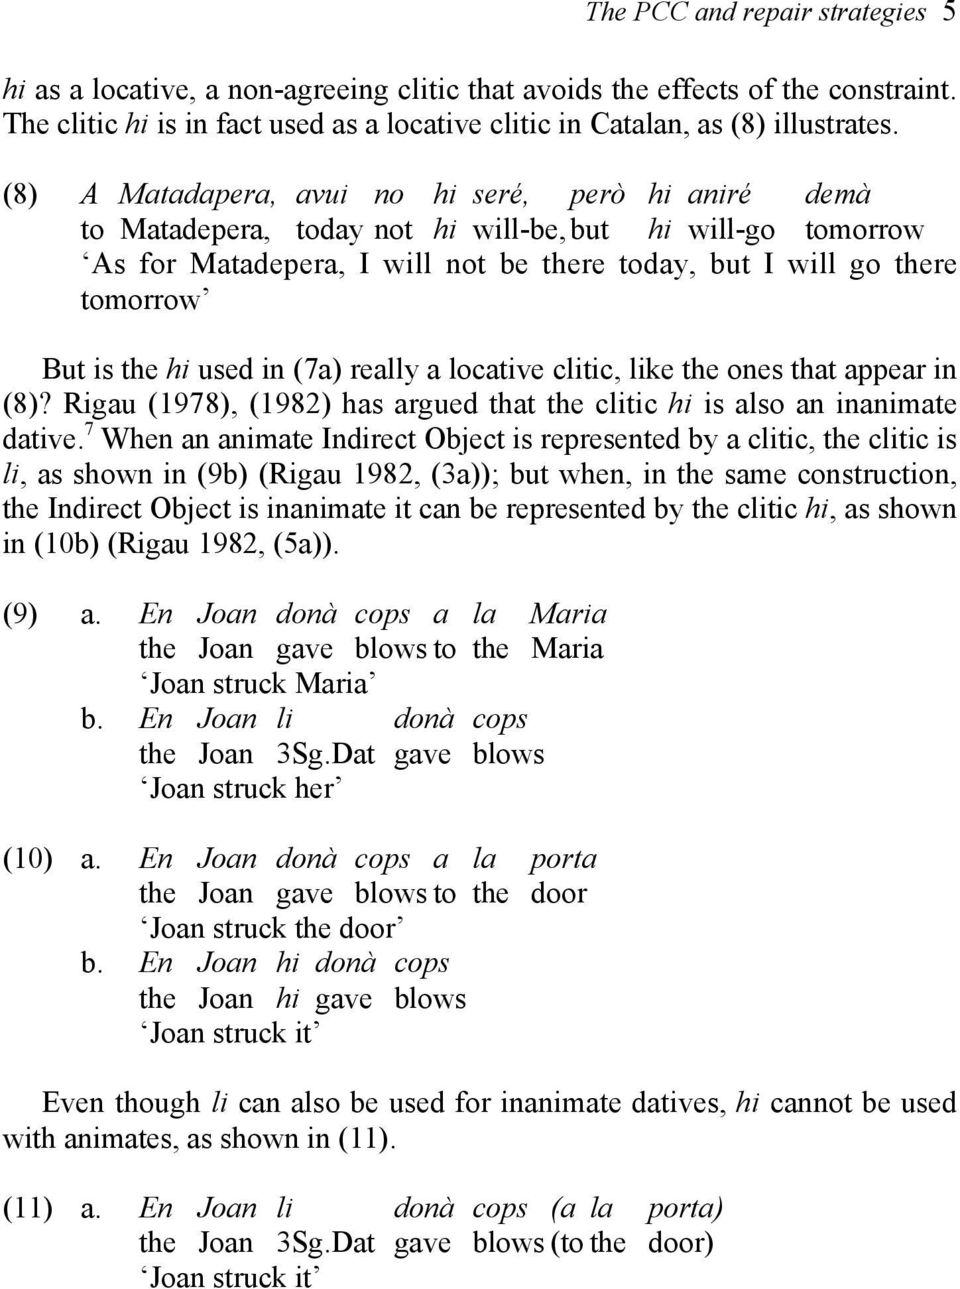 the hi used in (7a) really a locative clitic, like the ones that appear in (8)? Rigau (1978), (1982) has argued that the clitic hi is also an inanimate dative.